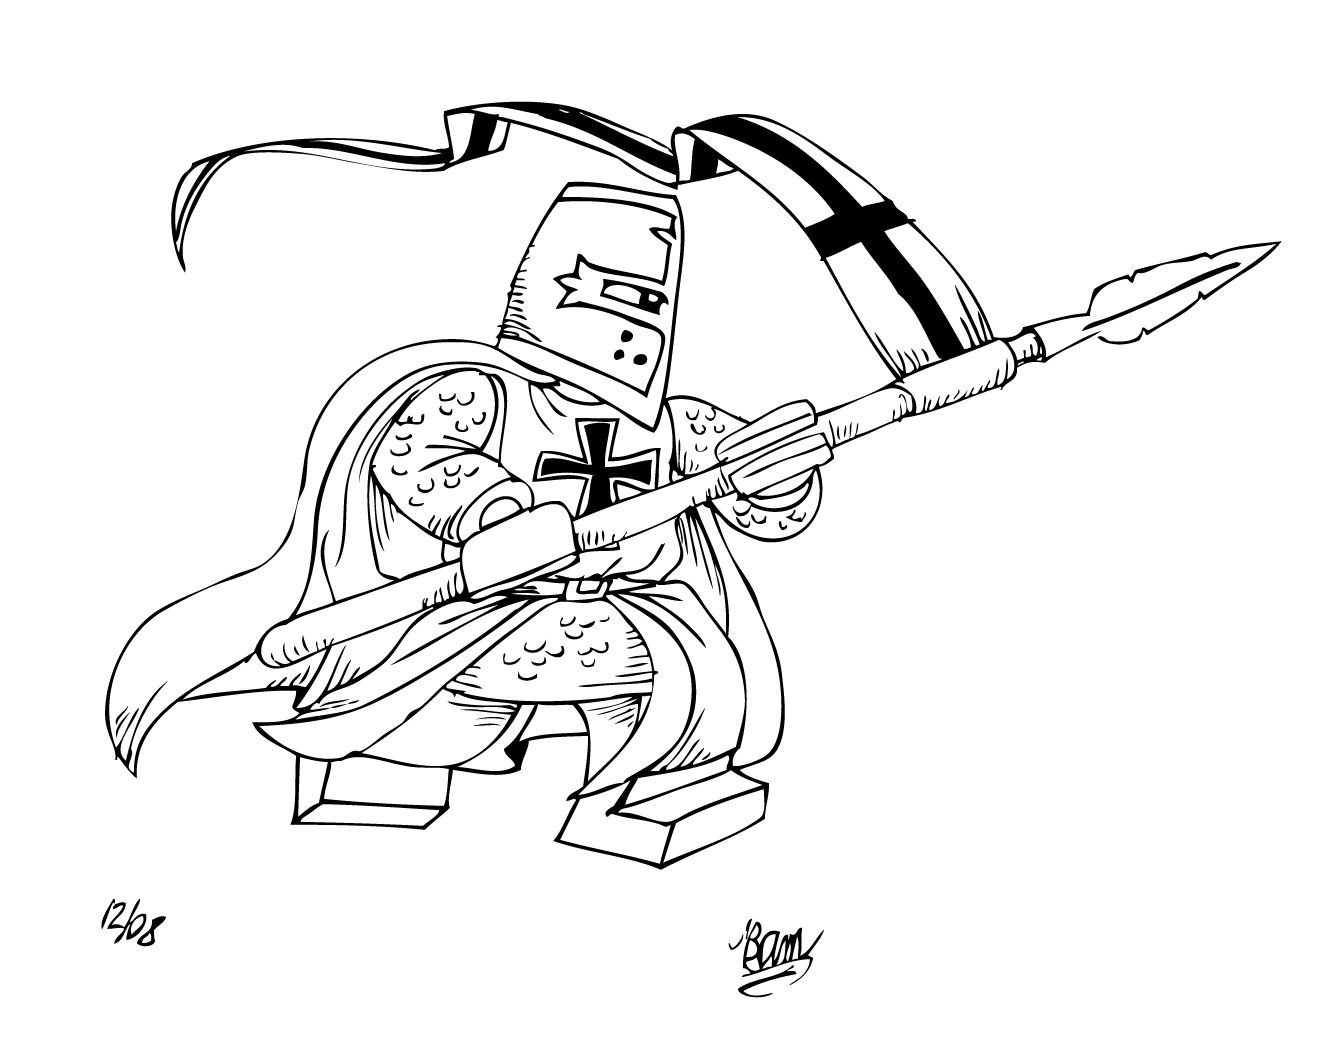 Lego Knight Coloring Pages | Coloring for Kids | Pinterest | Lego ...